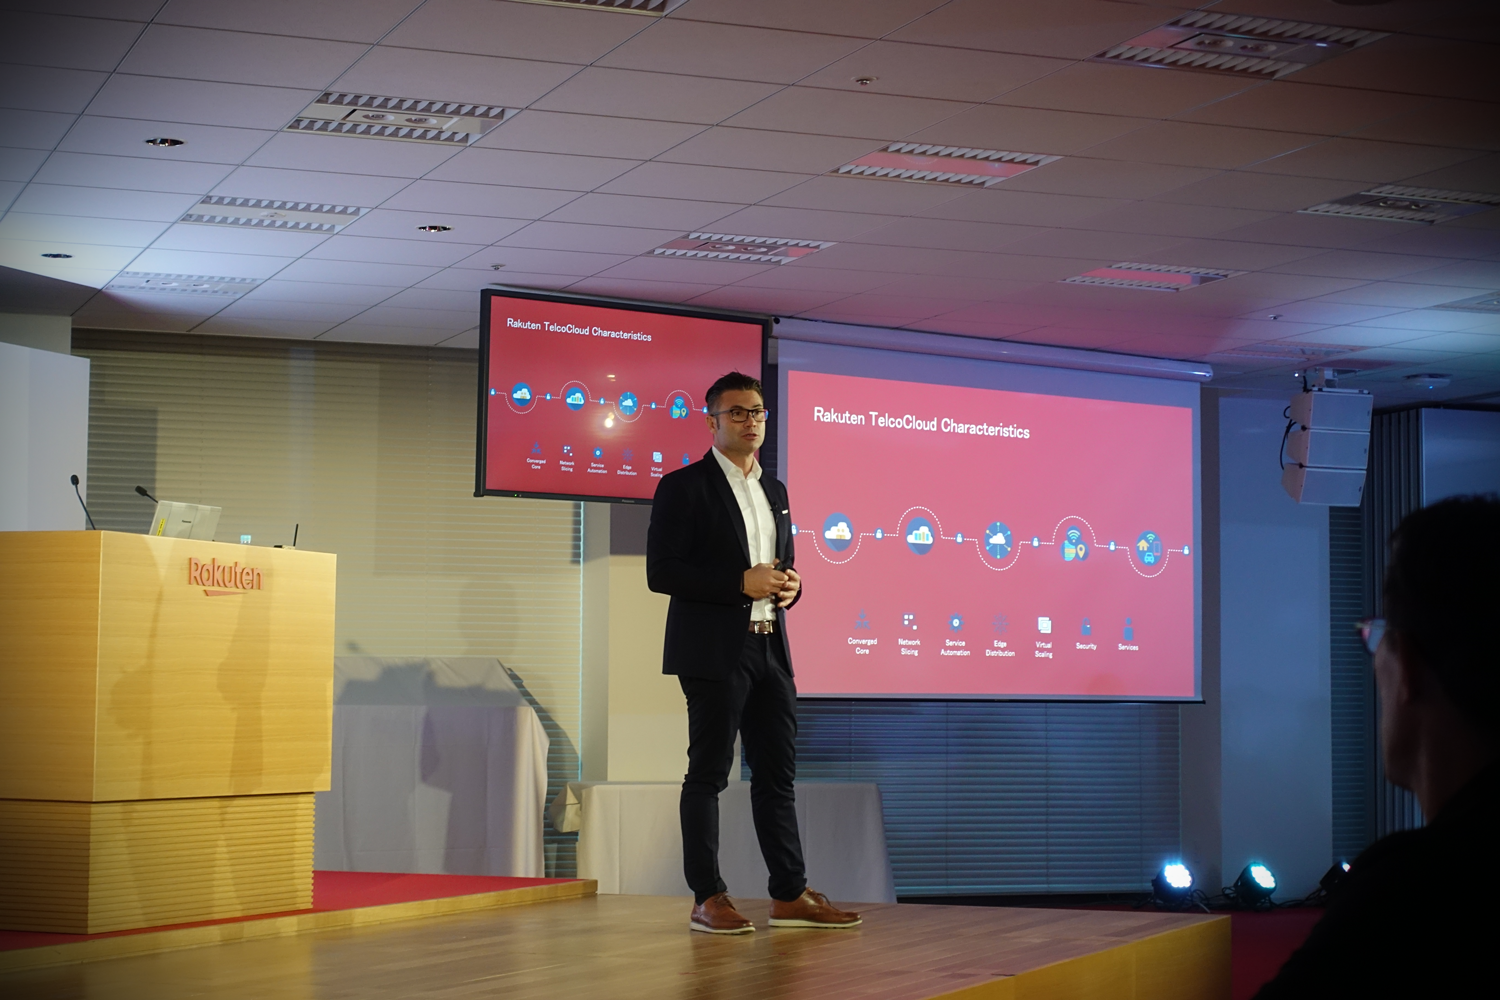 """What we're excited about is that this journey of transformation is not just going to be felt in Japan. This is a world-first implementation of a true end-to-end cloud-native network,"" said Rakuten Mobile Network CTO Tareq Amin at Rakuten Technology Conference in Tokyo last month."